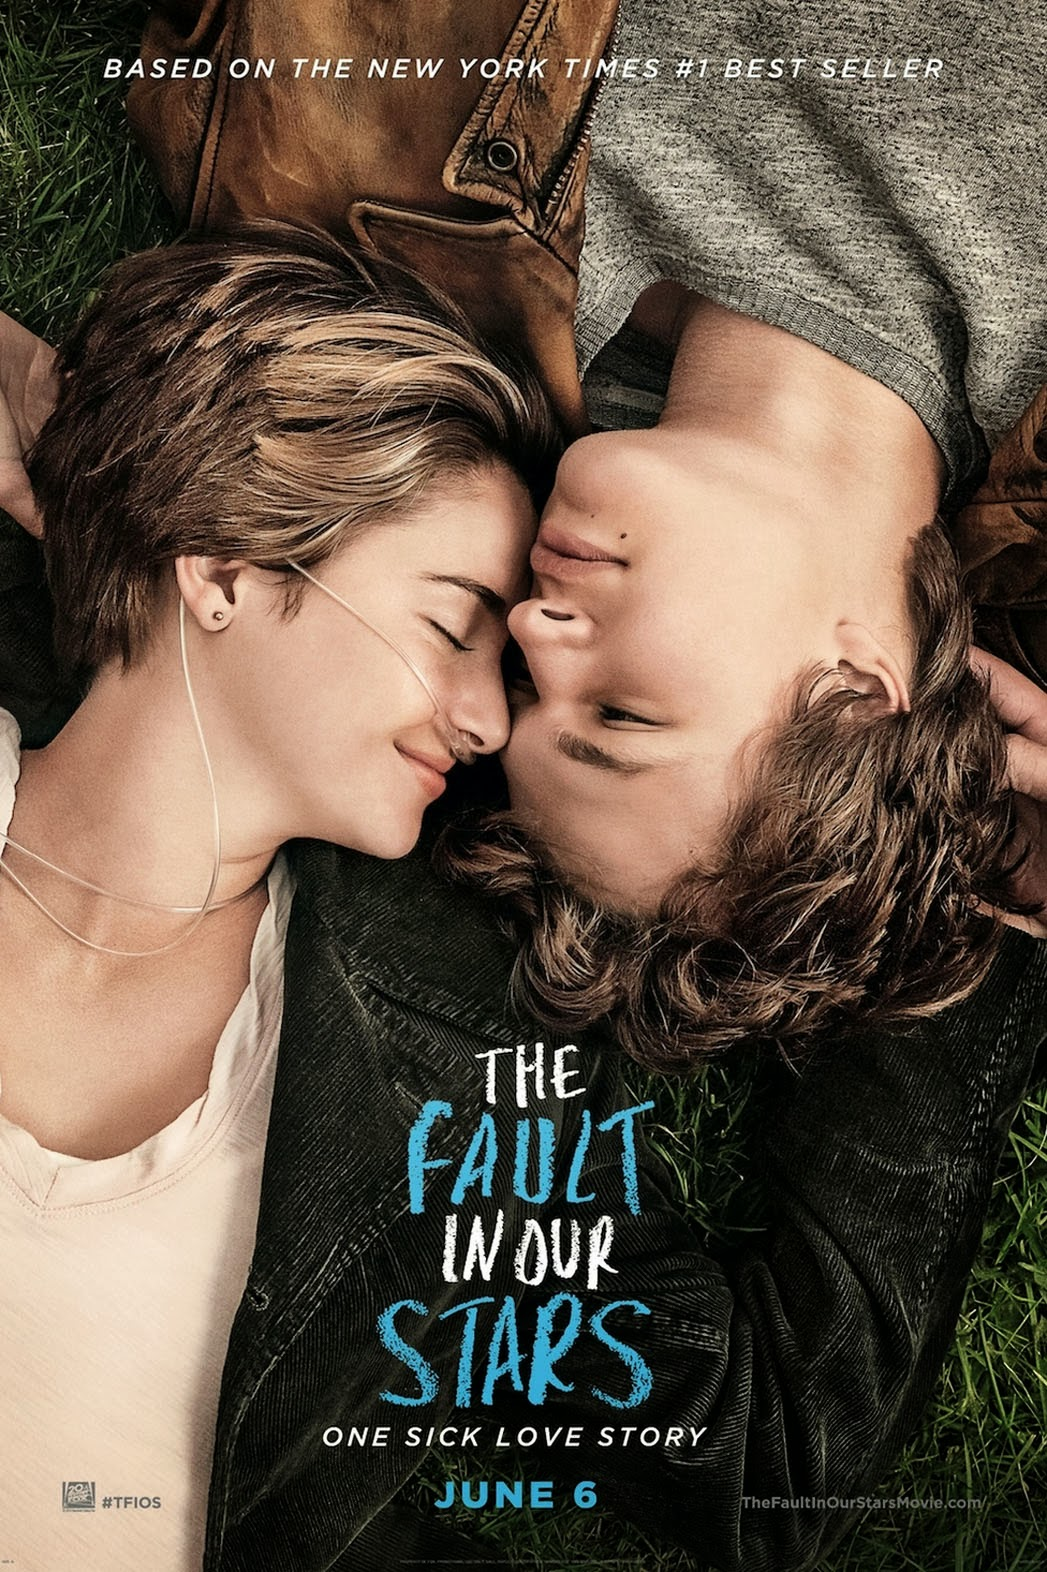 The Fault in Our Stars Movie Poster, Hazel and Augustus, Shailene Woodley and Ansel Elgort